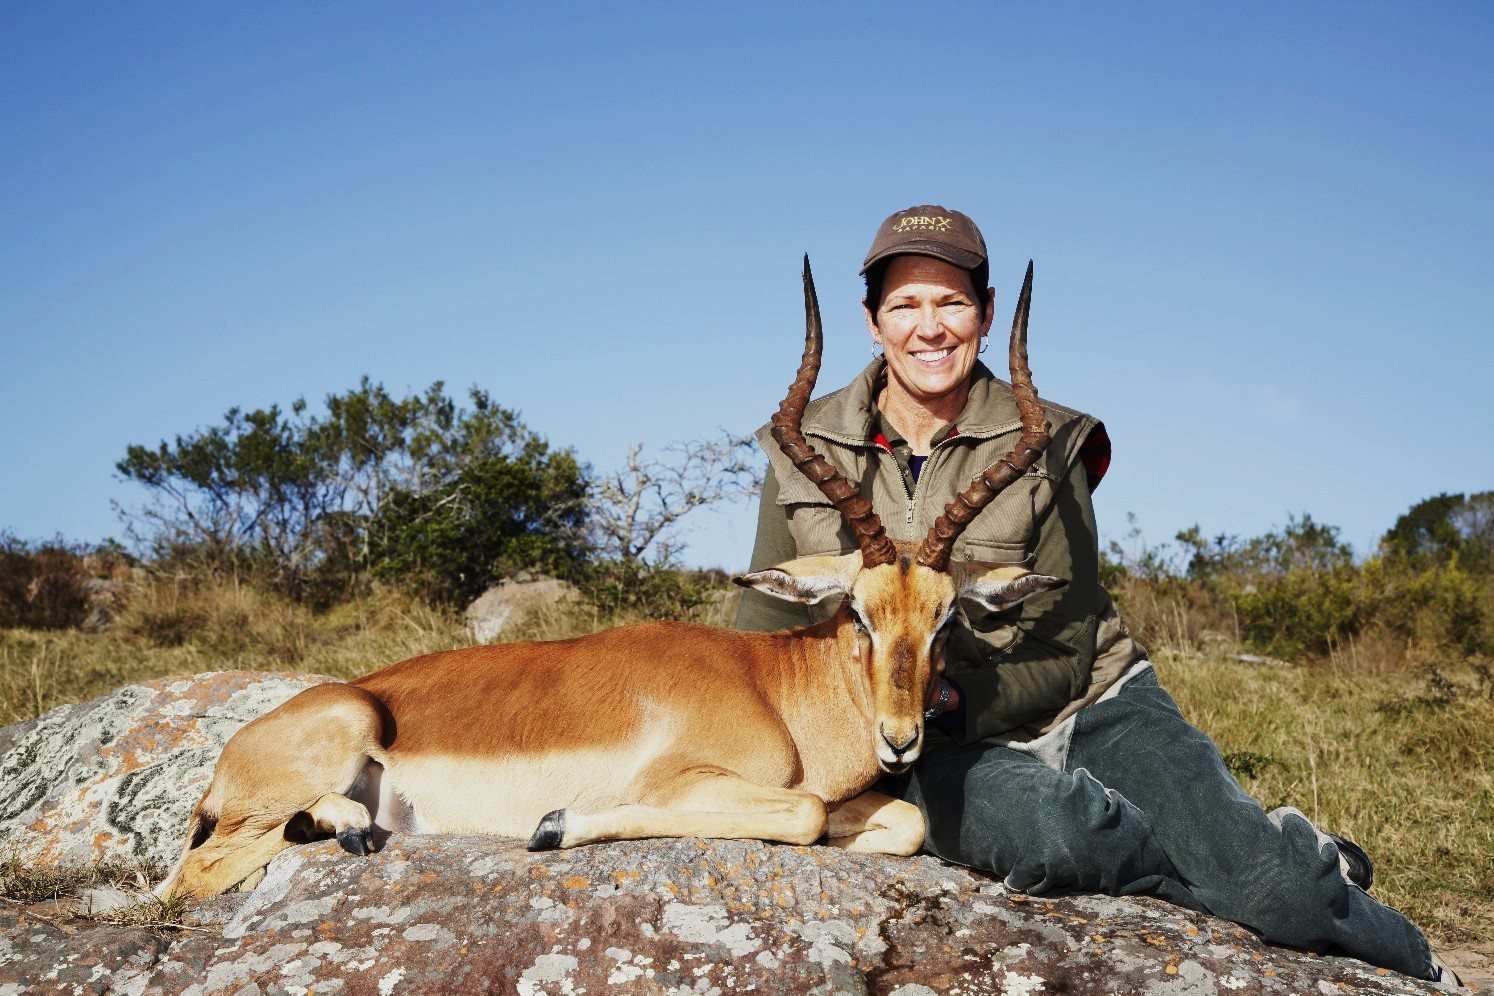 Wilson was in my pocket when I became a member of the Safari Sisterhood and took my impala … my first ever game trophy.